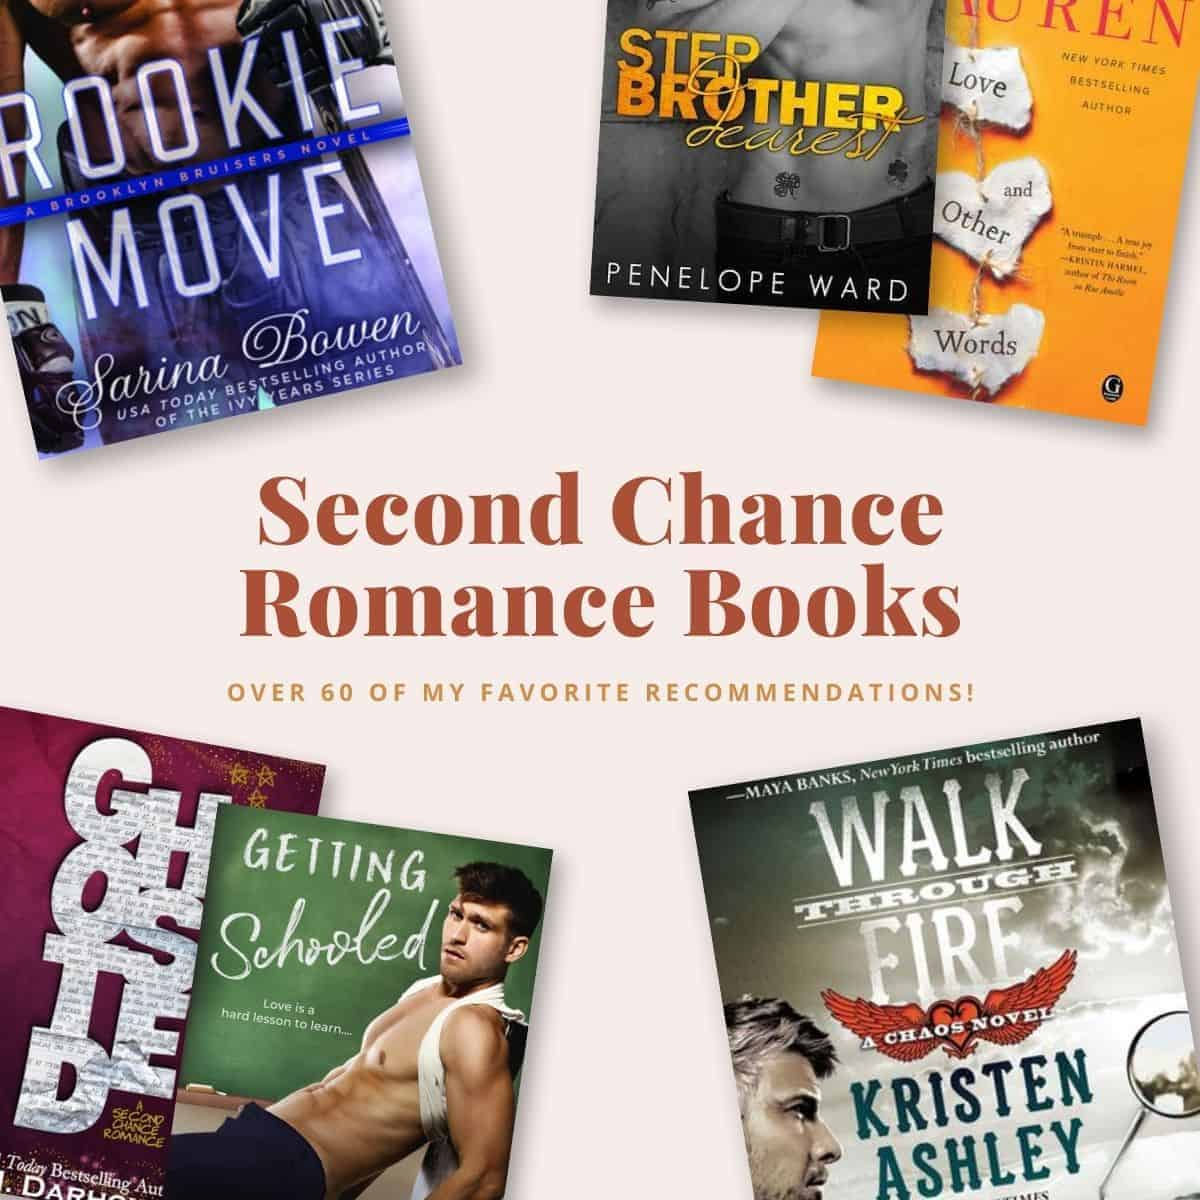 The Best Second Chance Romance Books is a curated list of second chance romance novels recommendations by book blogger Totally Bex